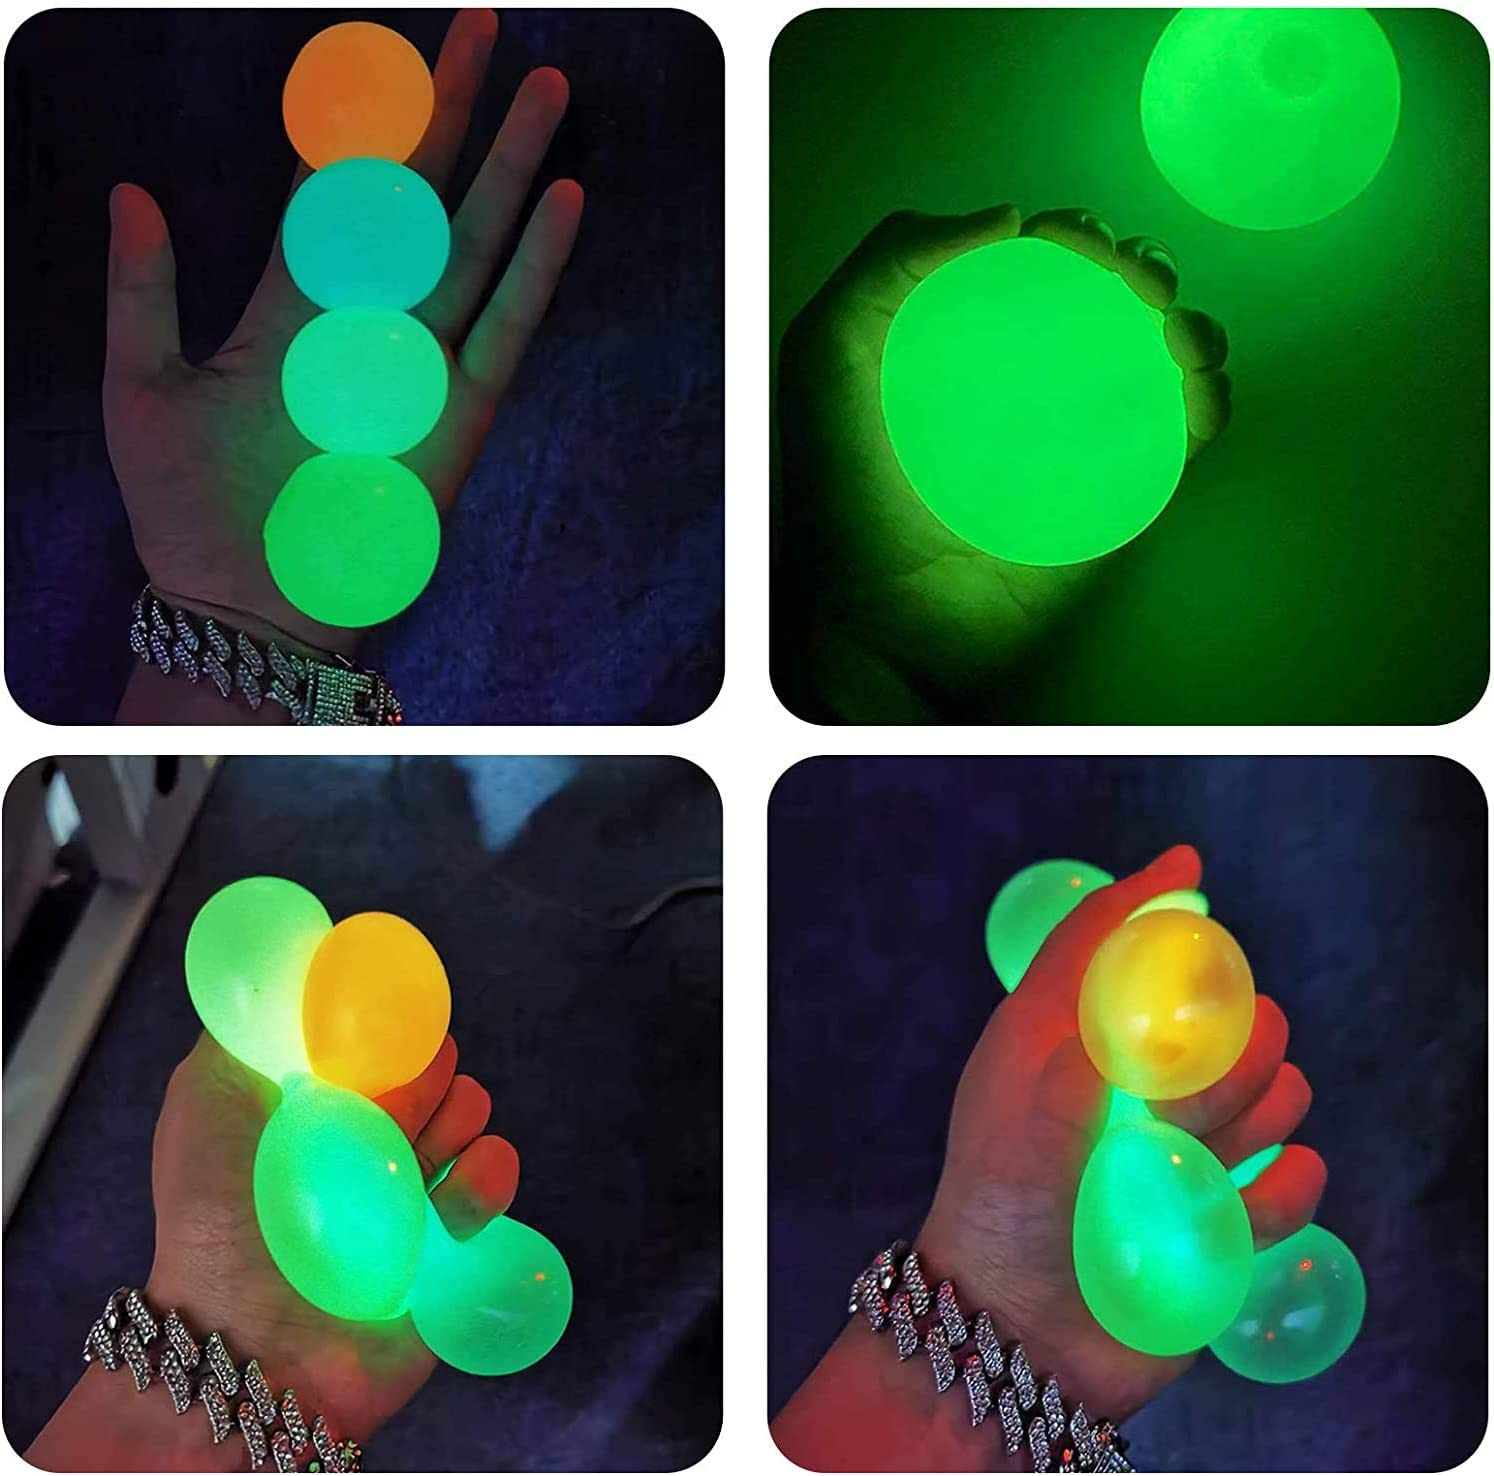 Stress Relief Balls 4 Pcs Luminescent Sticky Ball, Squishy Glow Stress Relief Toys for Kids and Adults Tear-Resistant, Fun Toy for ADHD, OCD, Anxiety